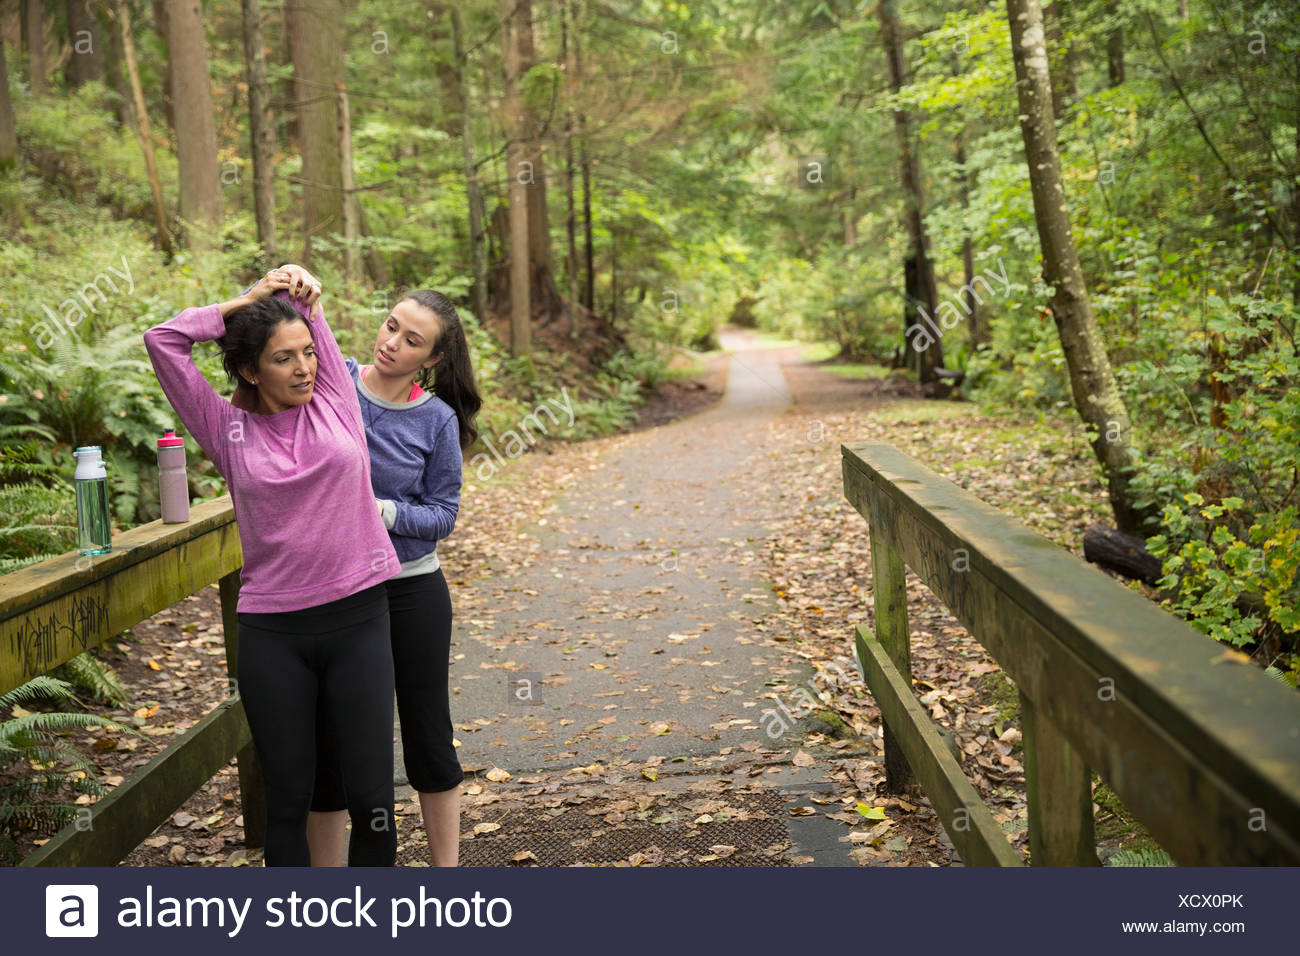 Daughter helping mother stretch preparing for run woods - Stock Image